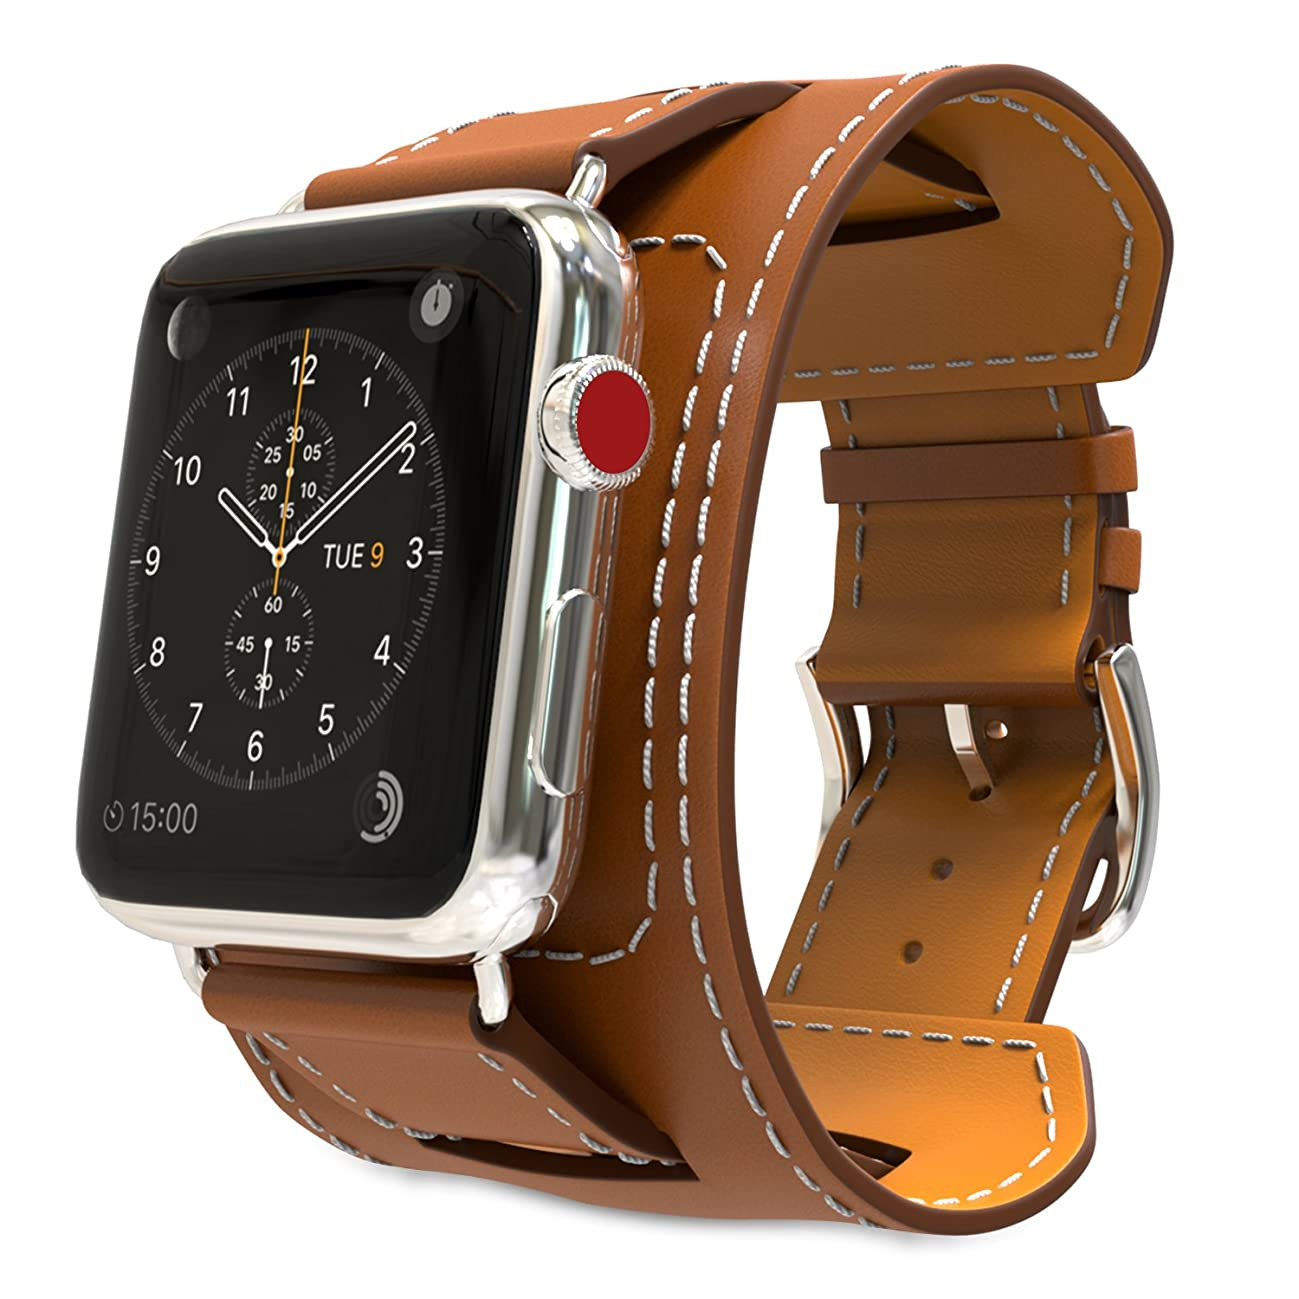 MoKo Compatible Band Replacement for Apple Watch 42mm 44mm Series 4/3/2/1, Genuine Leather Smart Watch Band Cuff Replacement Strap - Brown (Not Fit 38mm 40mm Versions)